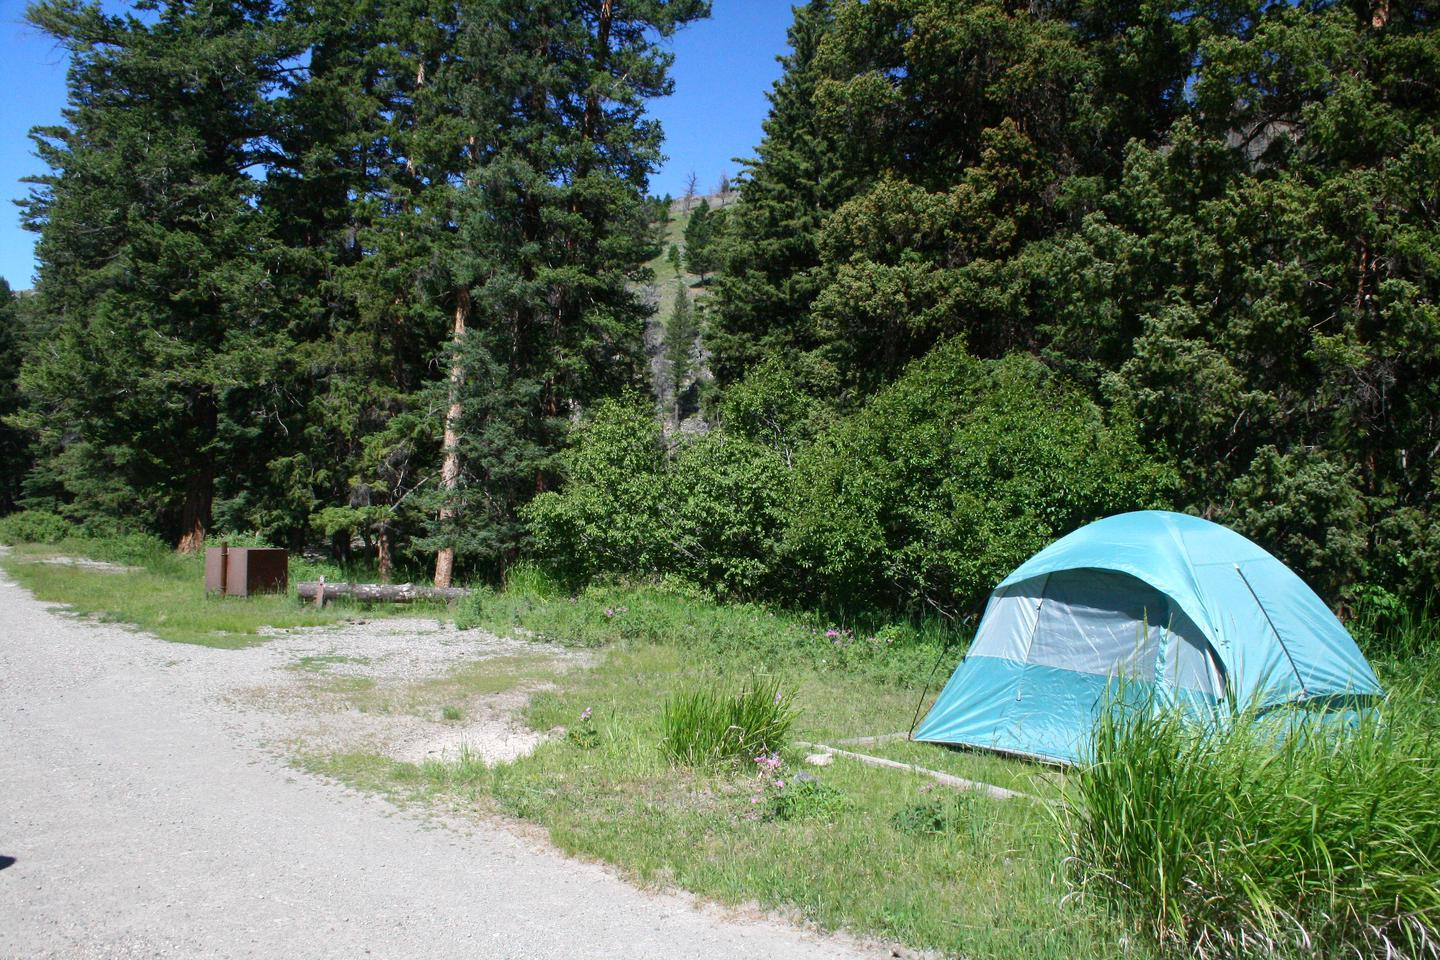 Slough Creek Campground Site #9....Slough Creek Campground Site #9